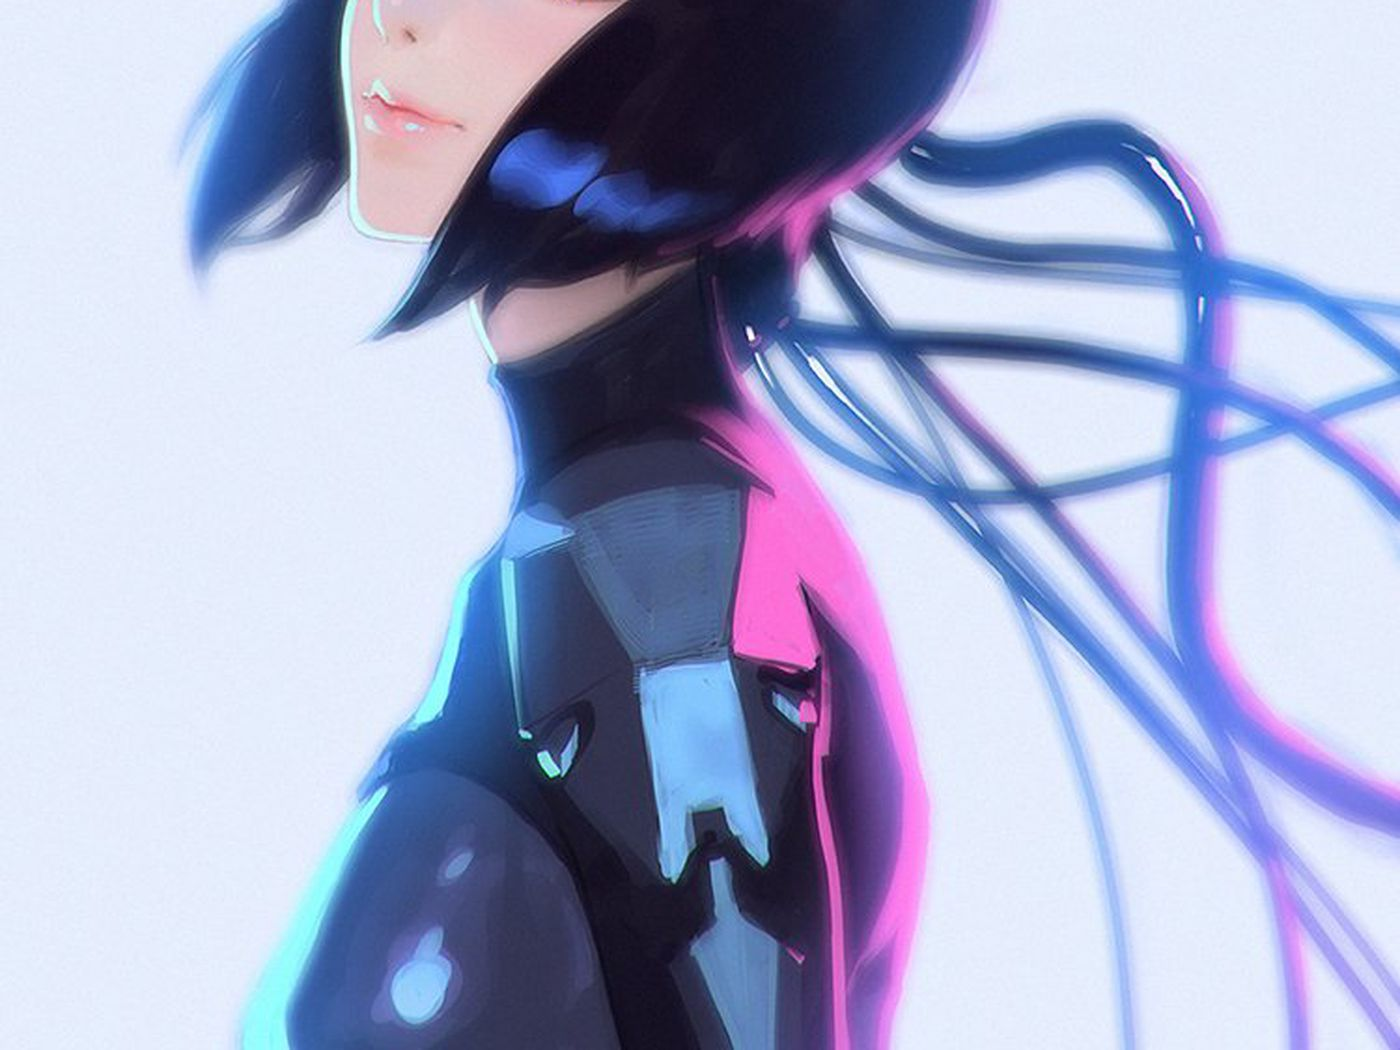 Netflix Will Release A New Ghost In The Shell Anime In 2020 The Verge